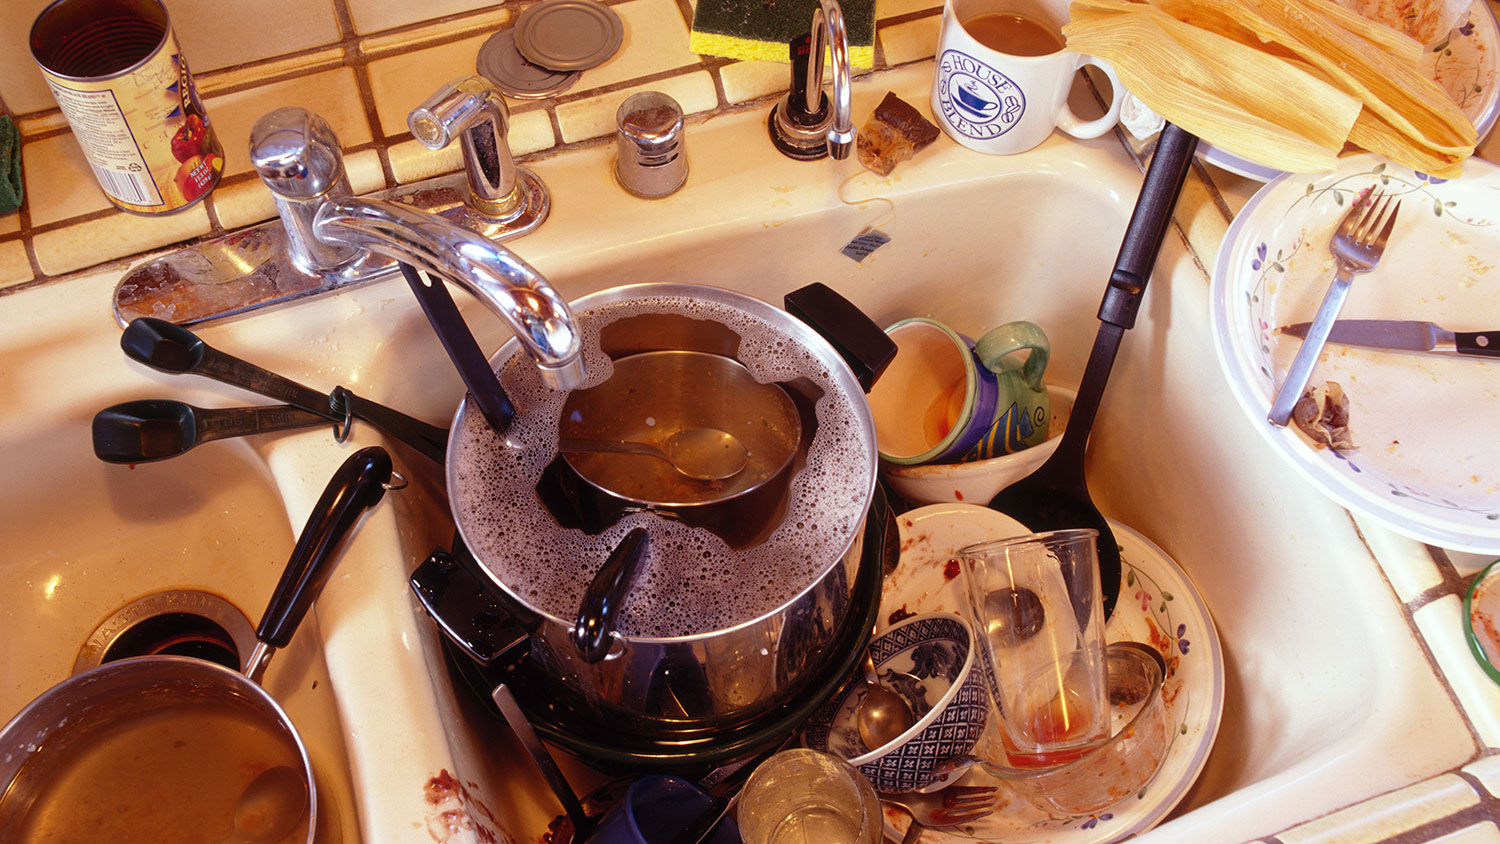 rancid milk dishes left in sink messy roommate